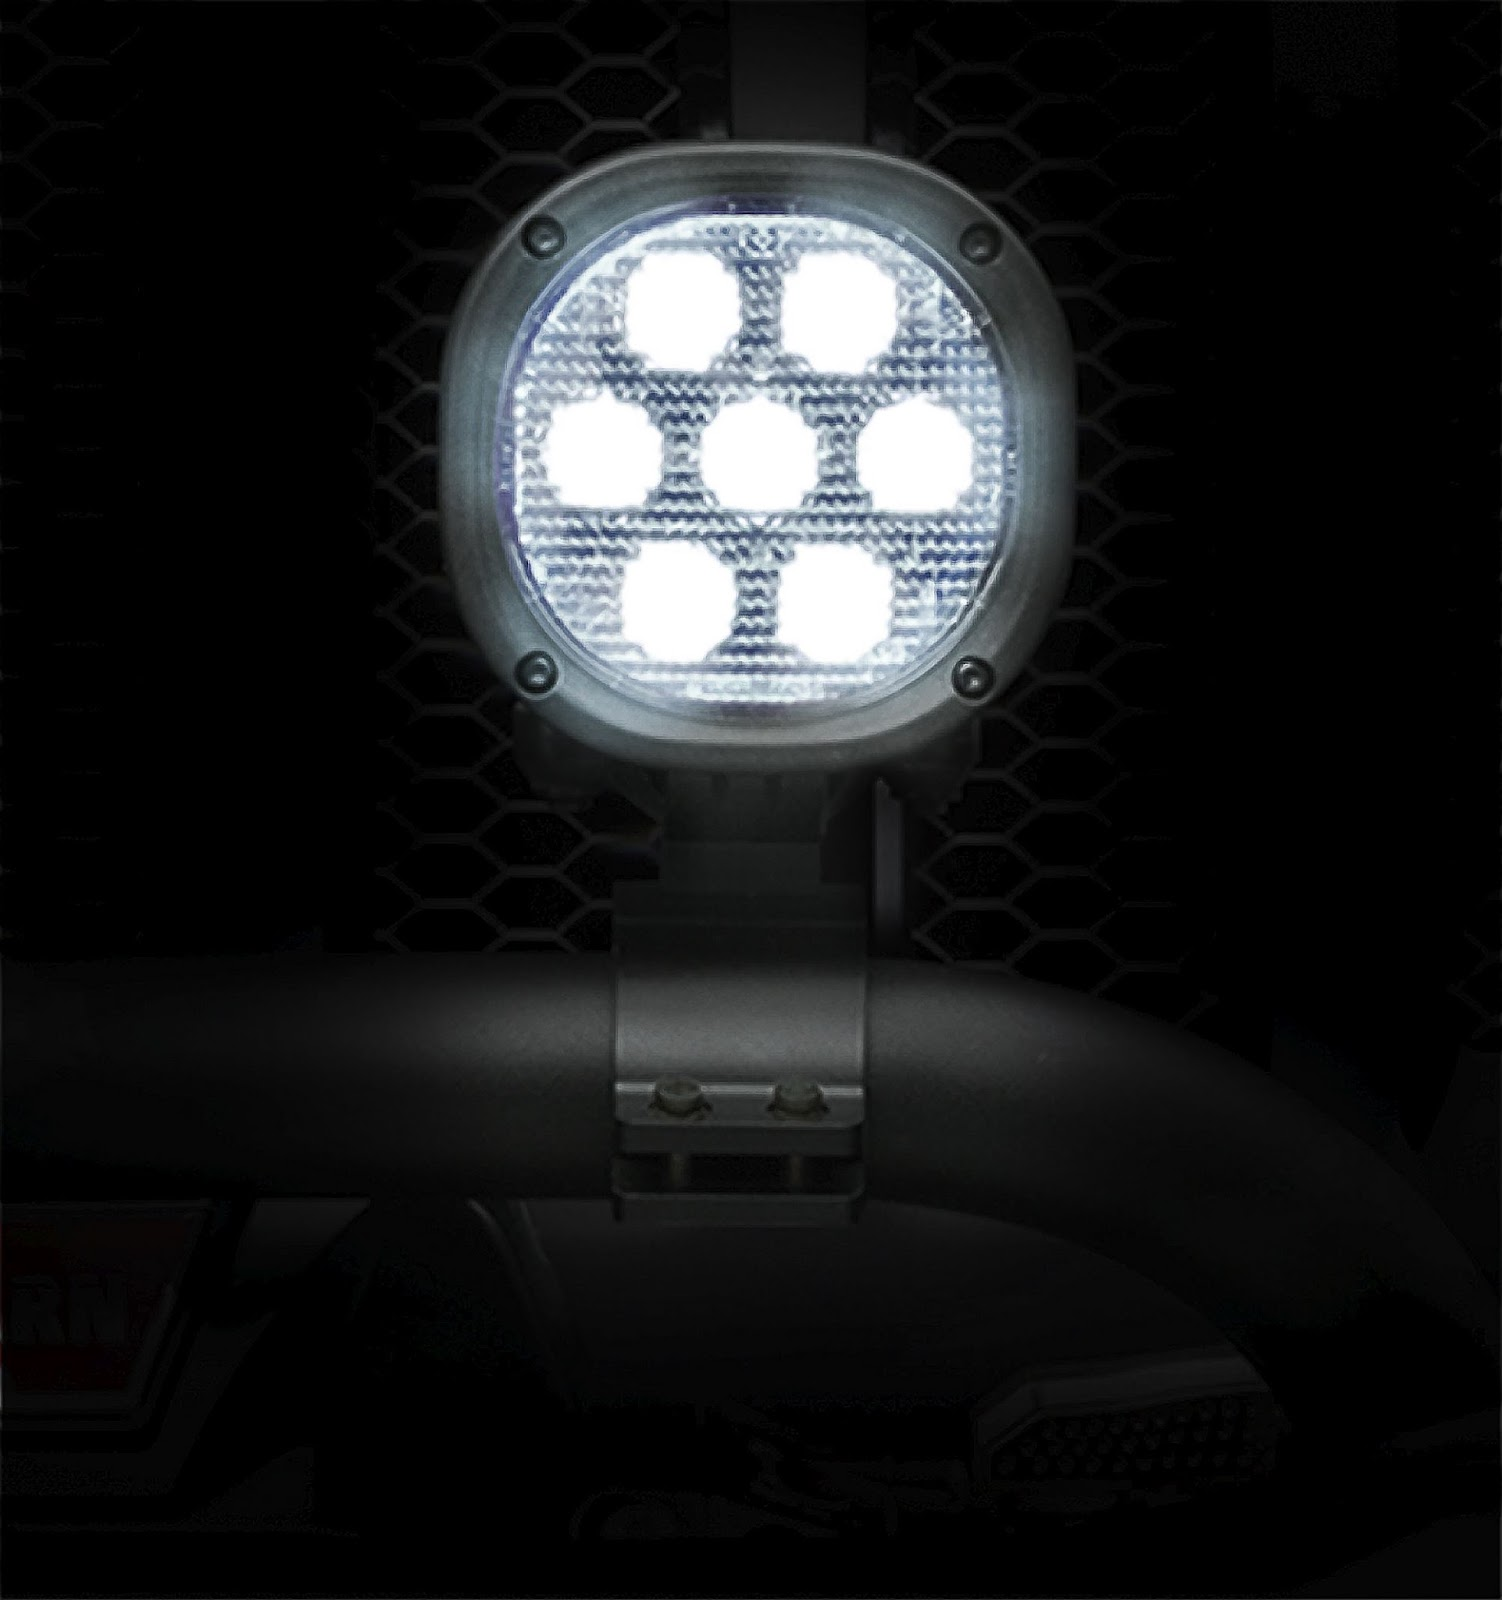 New Jeep® Performance Parts LED off-road lights, available in 5- and 7-inch (pictured) applications, produce a maximum of 8,000 lumens, putting commercial and military grade illumination into the hands of hard core off-roaders.